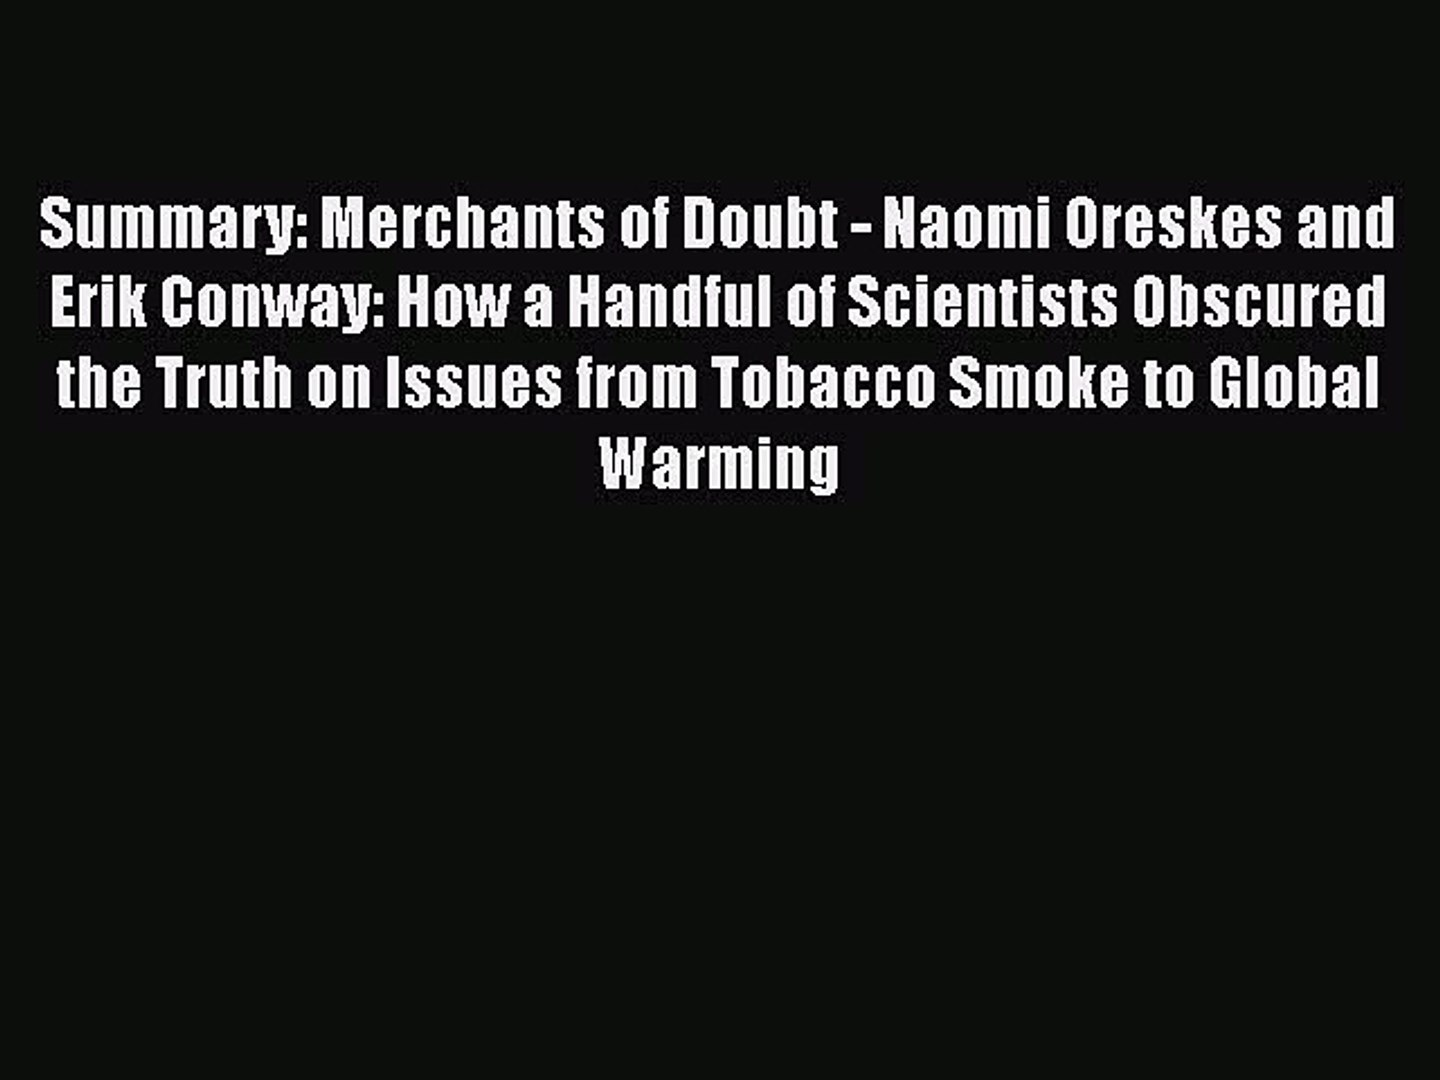 Read Book Summary: Merchants of Doubt - Naomi Oreskes and Erik Conway: How a Handful of Scientists